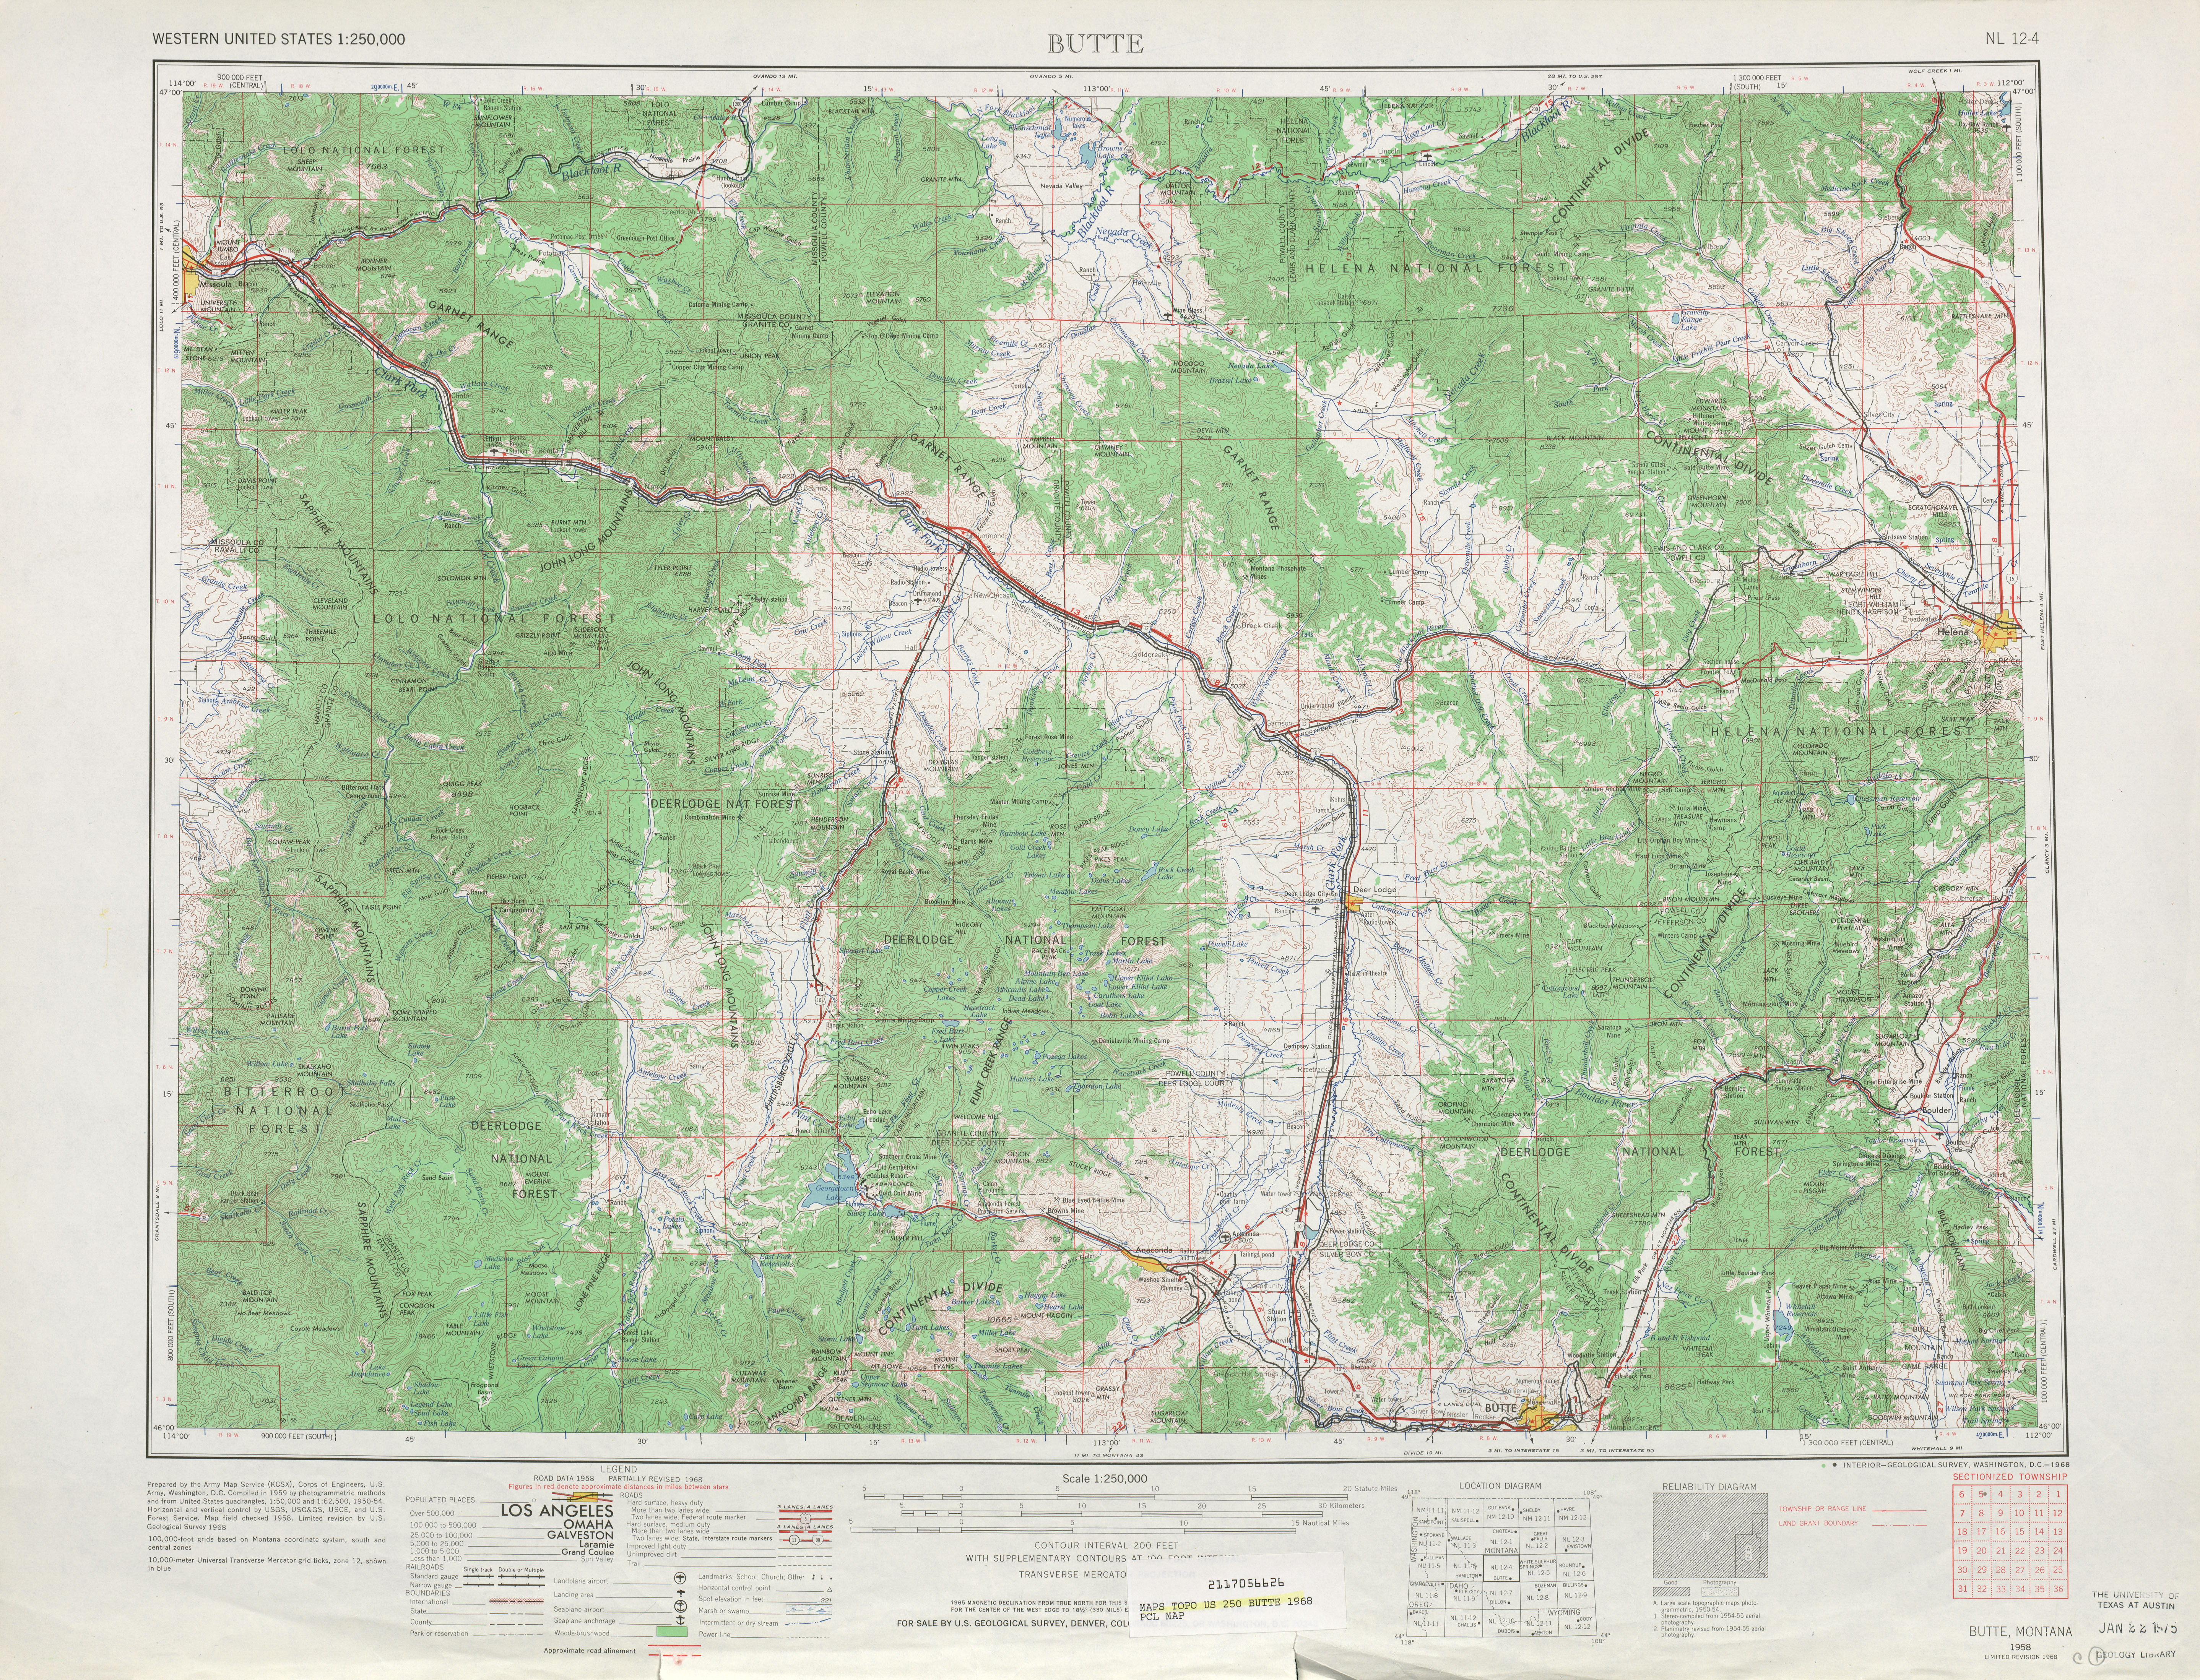 Butte Topographic Map Sheet, United States 1968